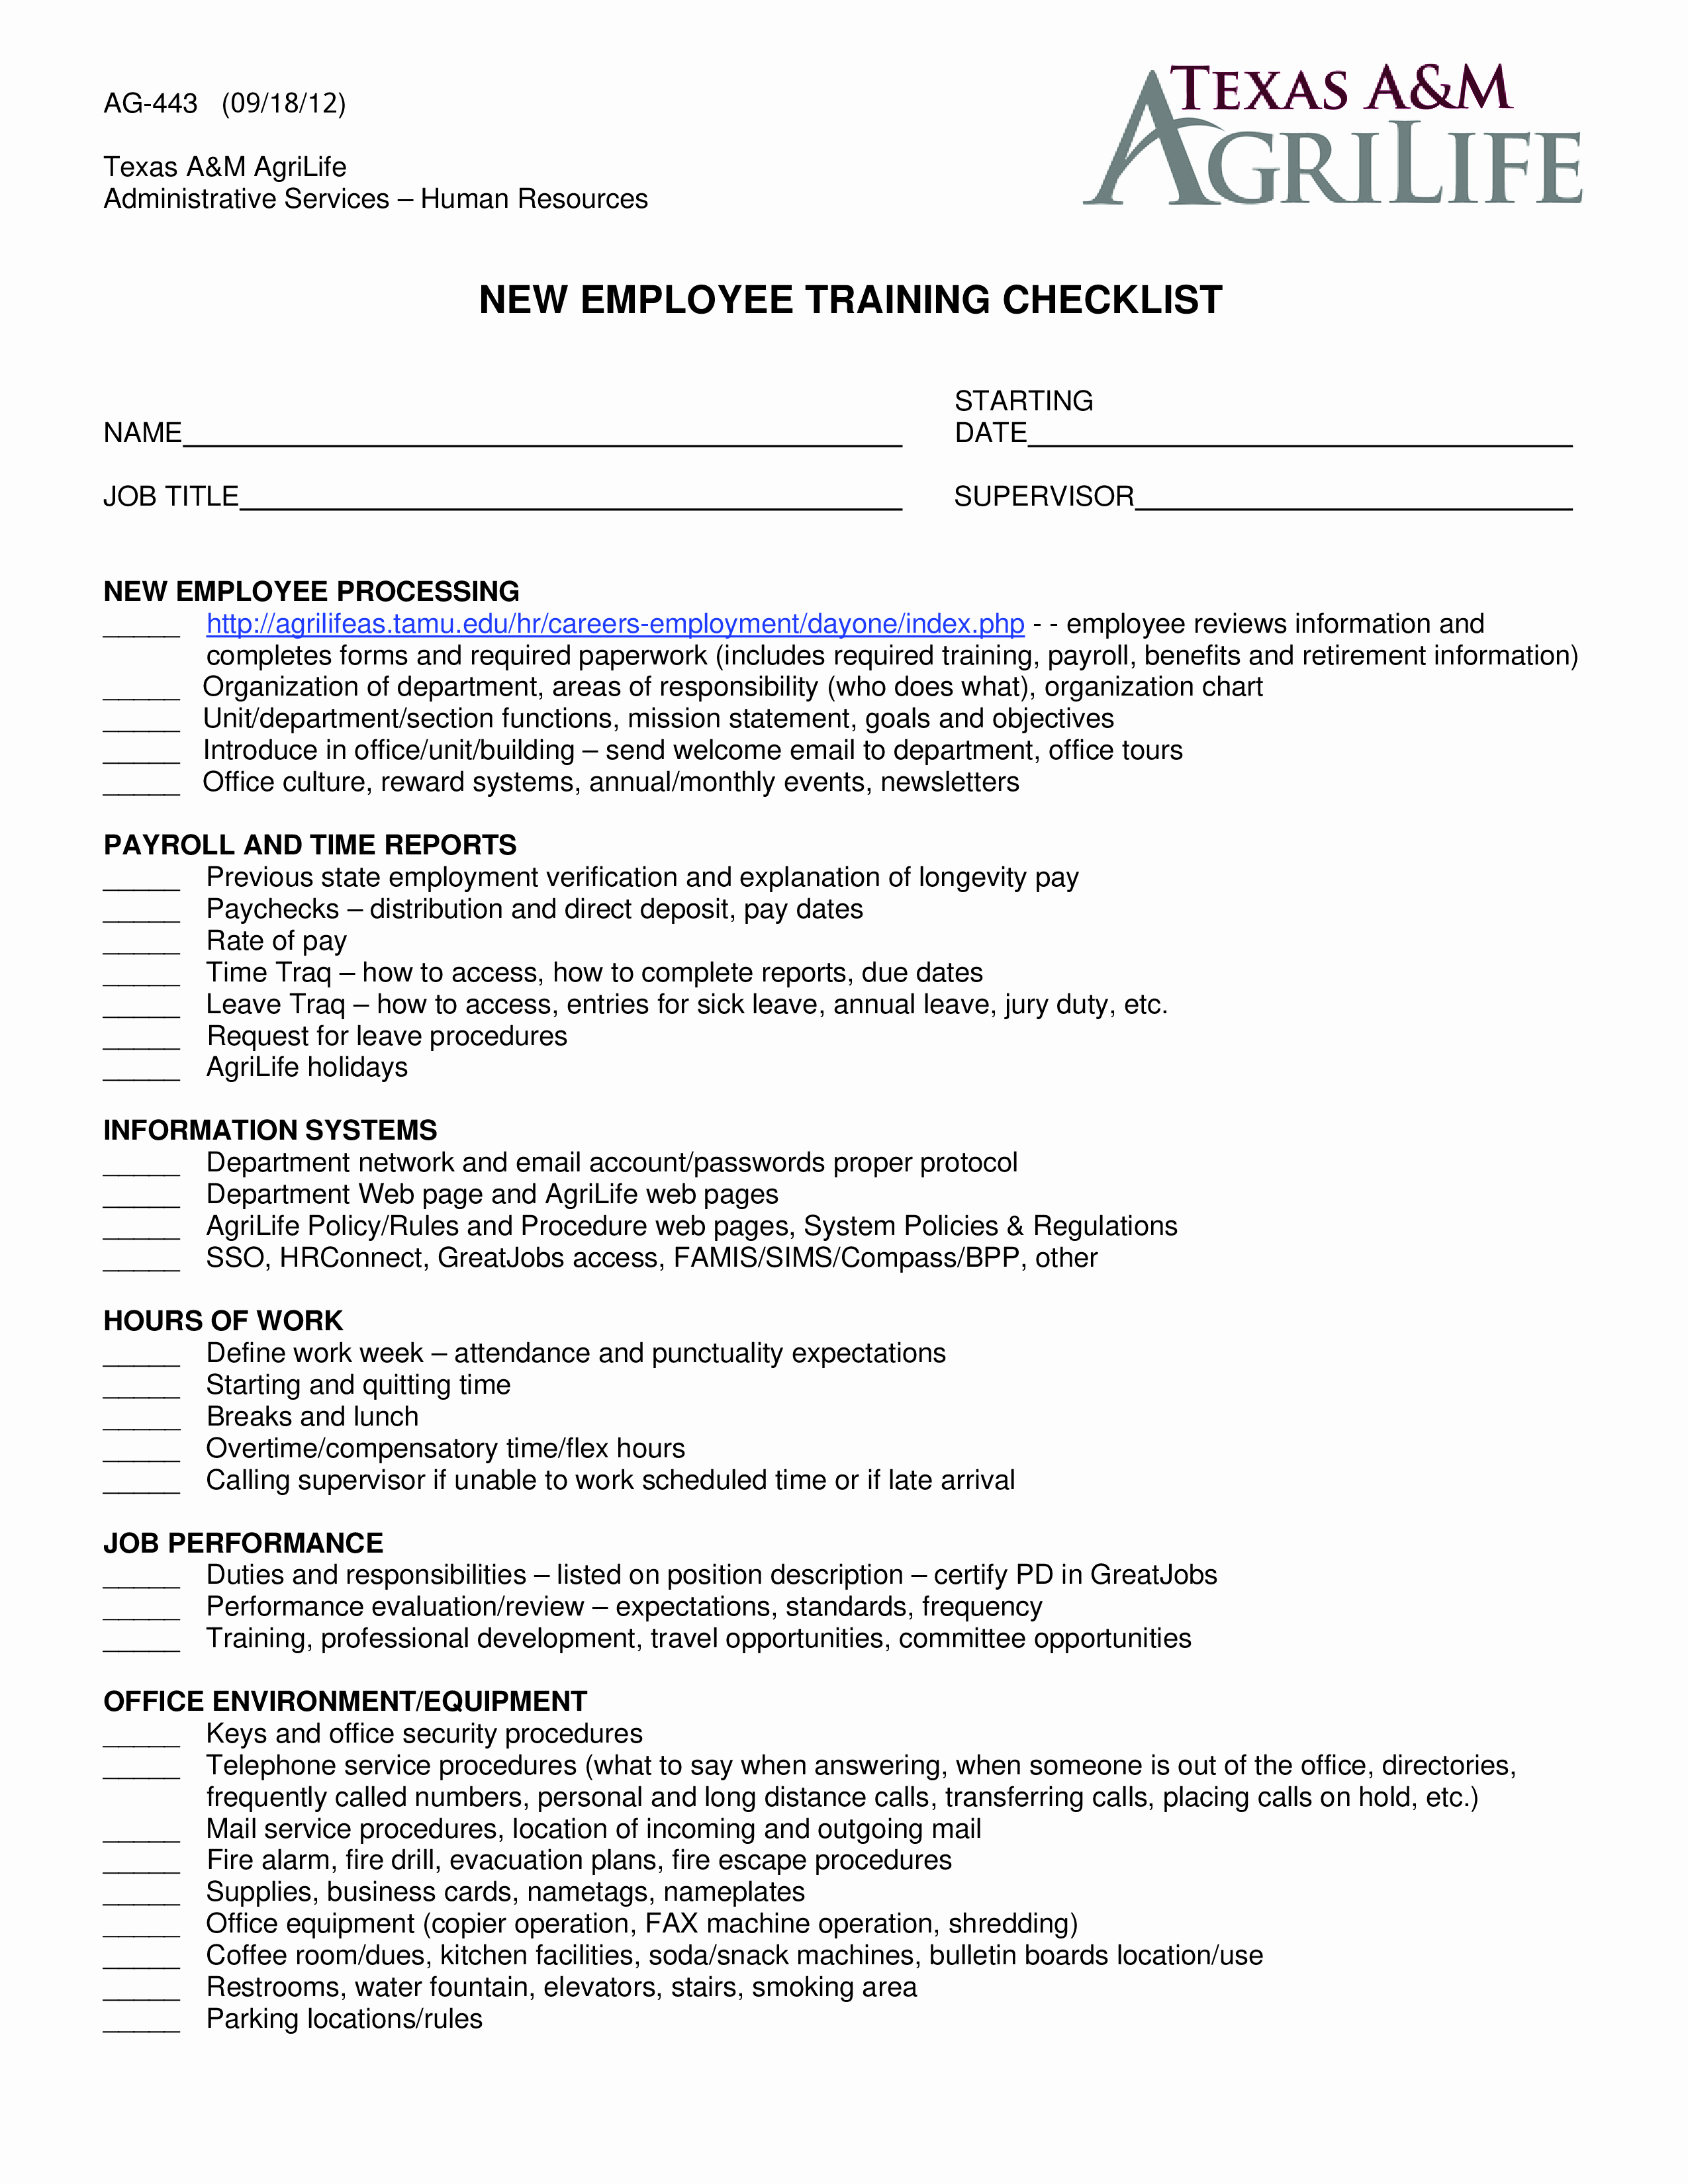 Employee Training Checklist Template Beautiful Free New Employee Training Checklist